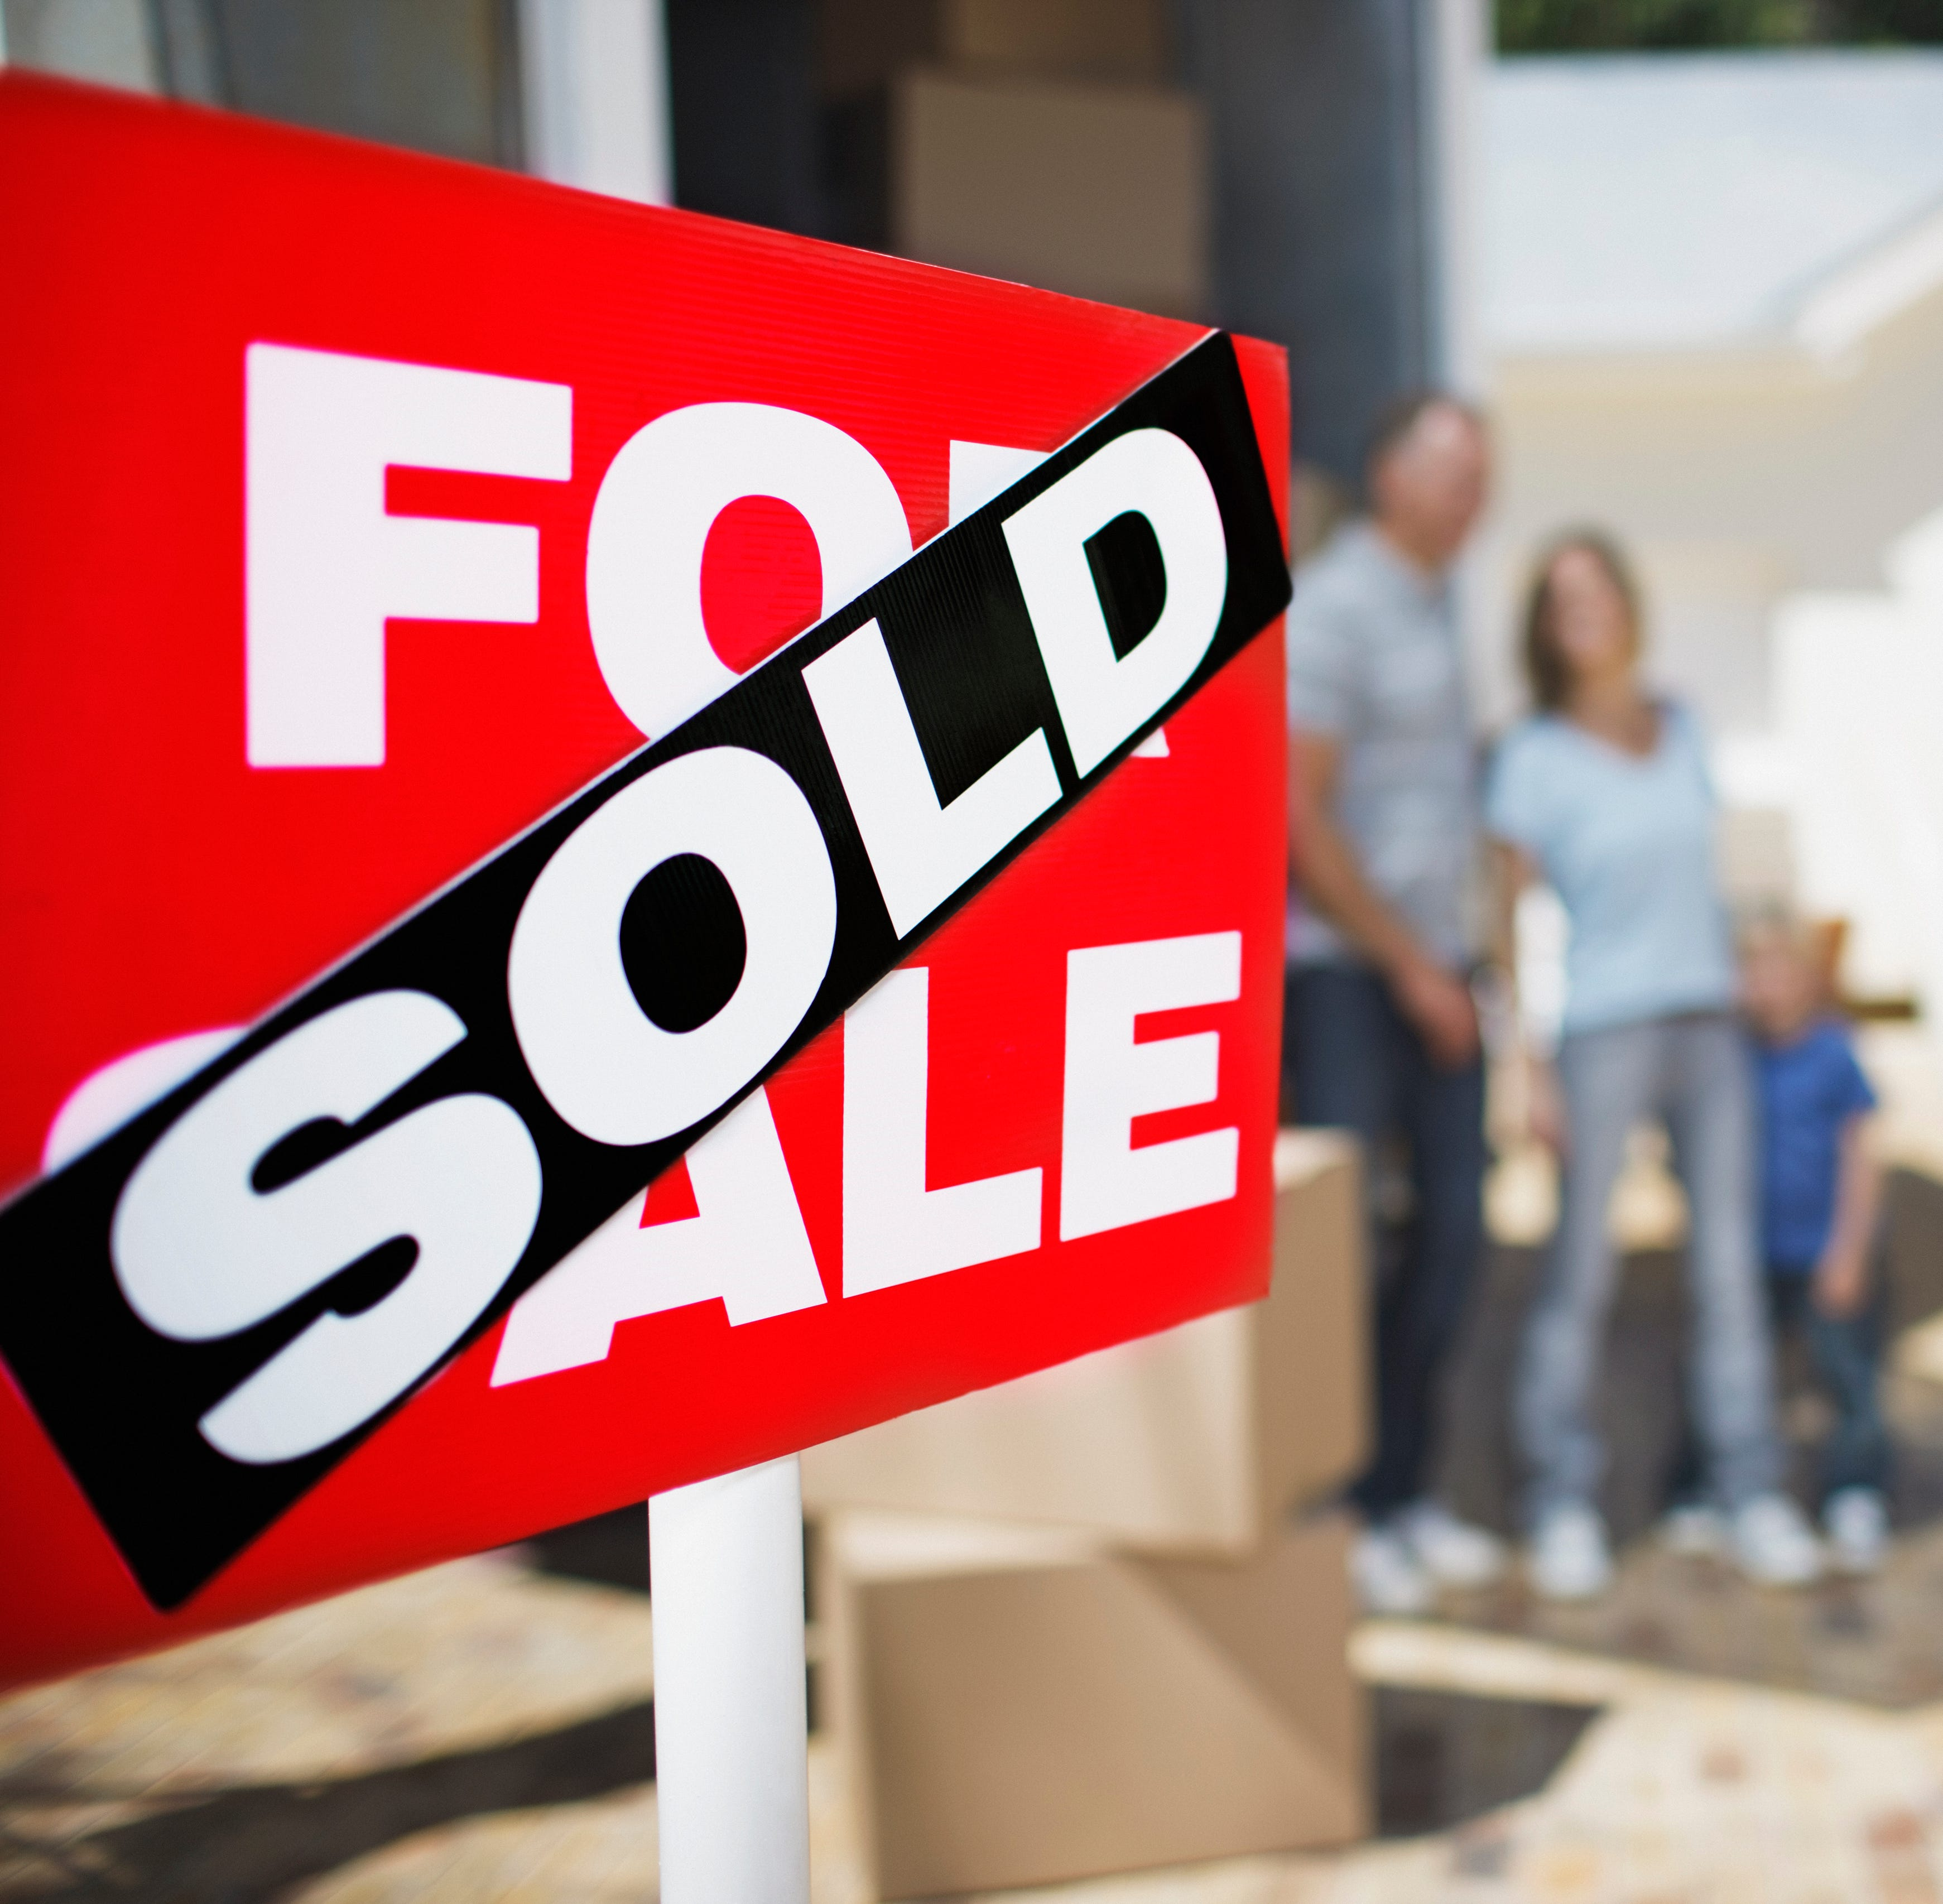 Million dollar homes, meh! 153 properties sold for $450K or less in April